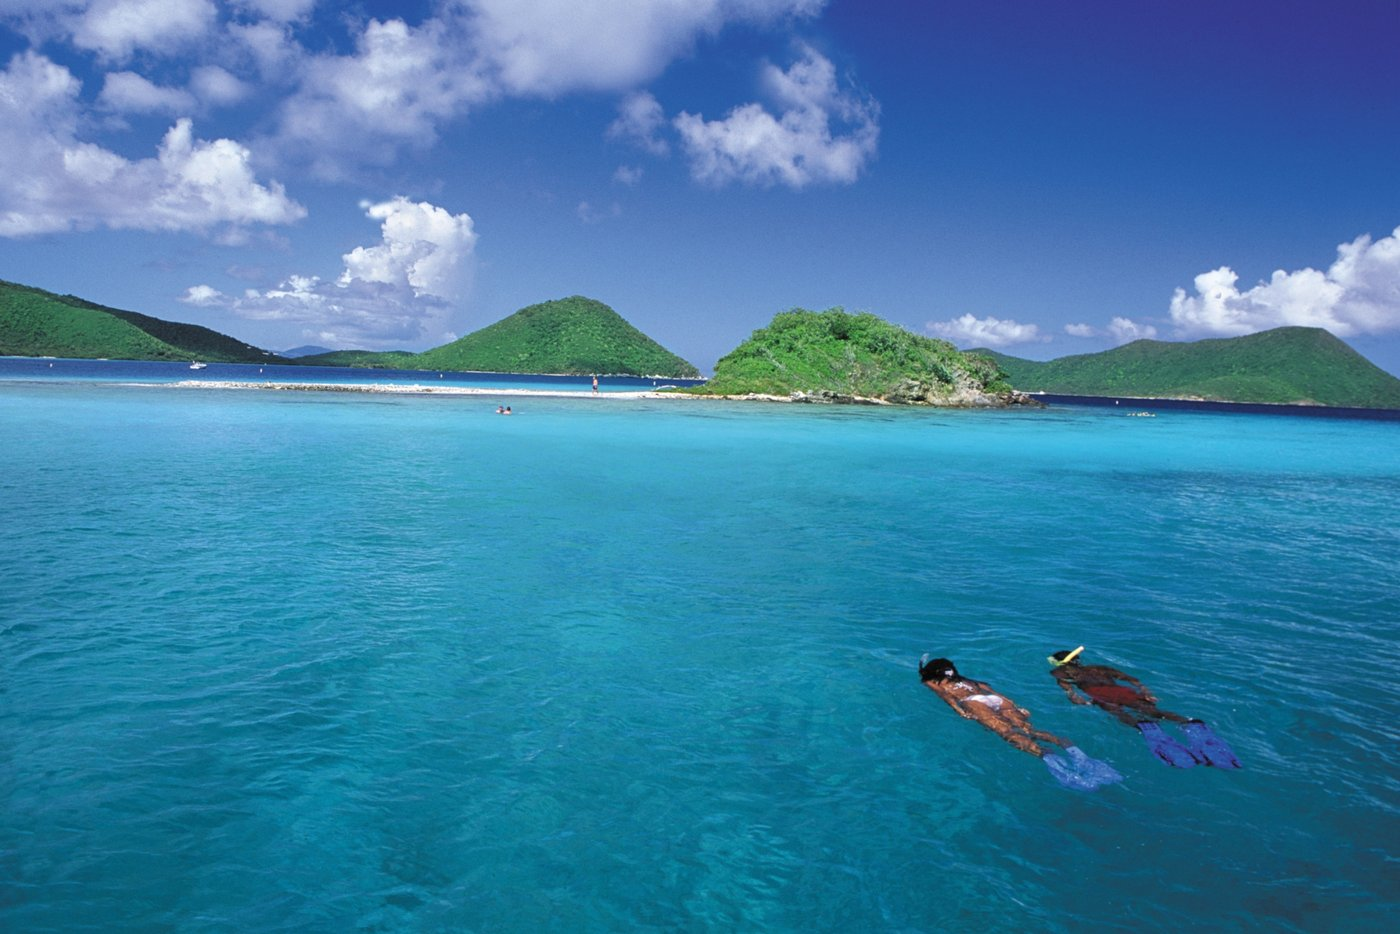 Explore the breath taking 'Alice in Wonderland' coral reef, BVI